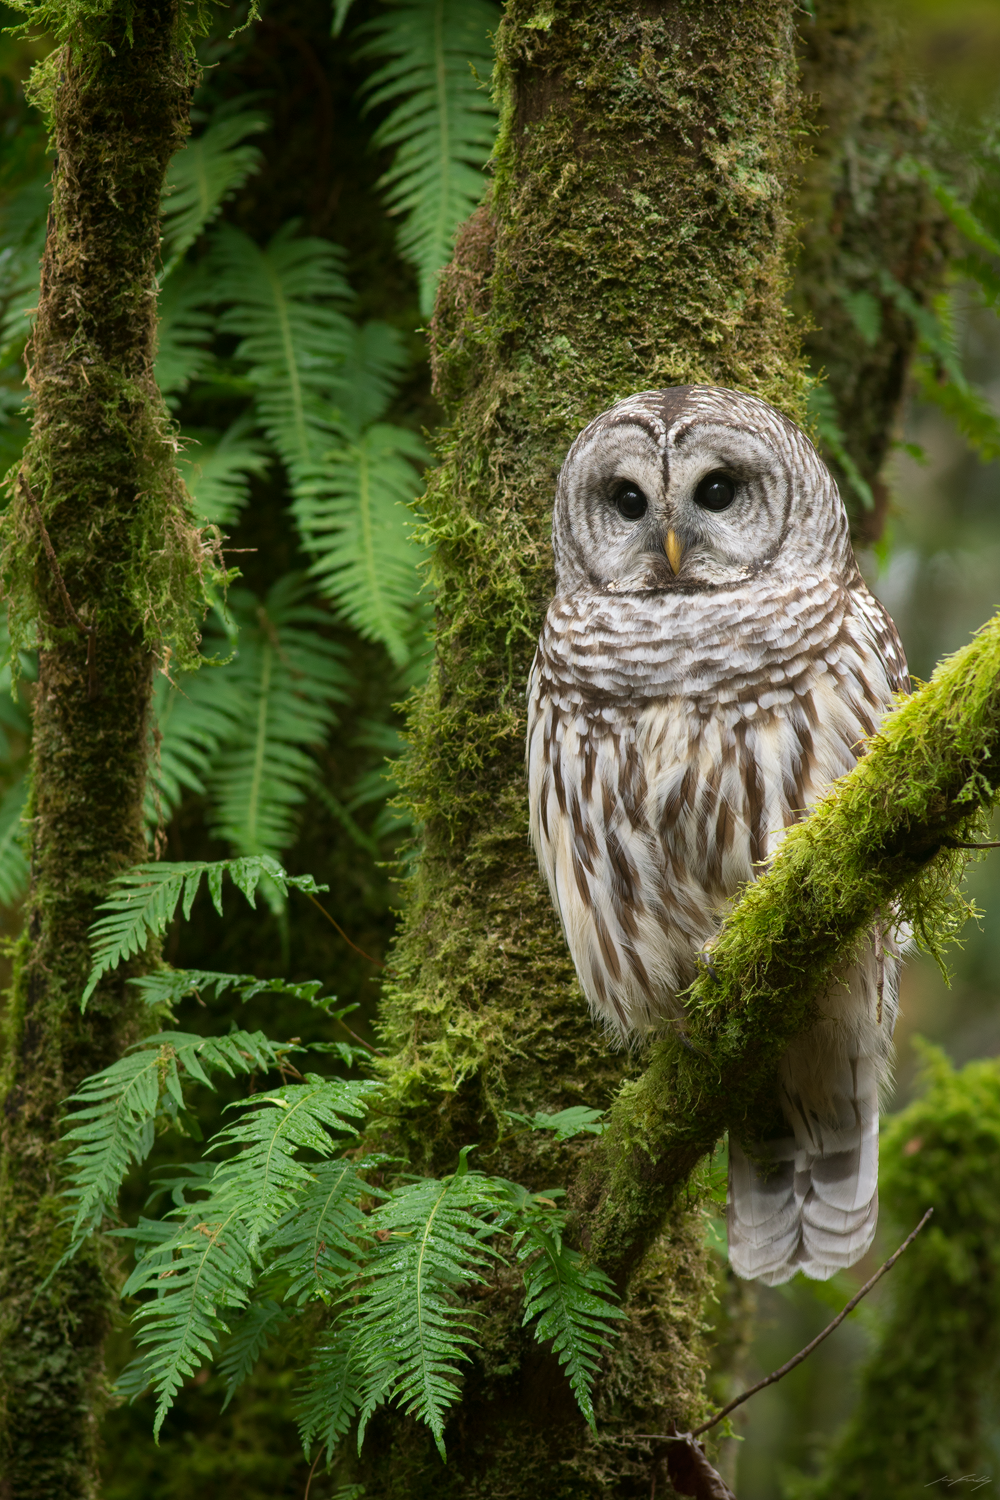 Barred Owl, British Columbia, Canada